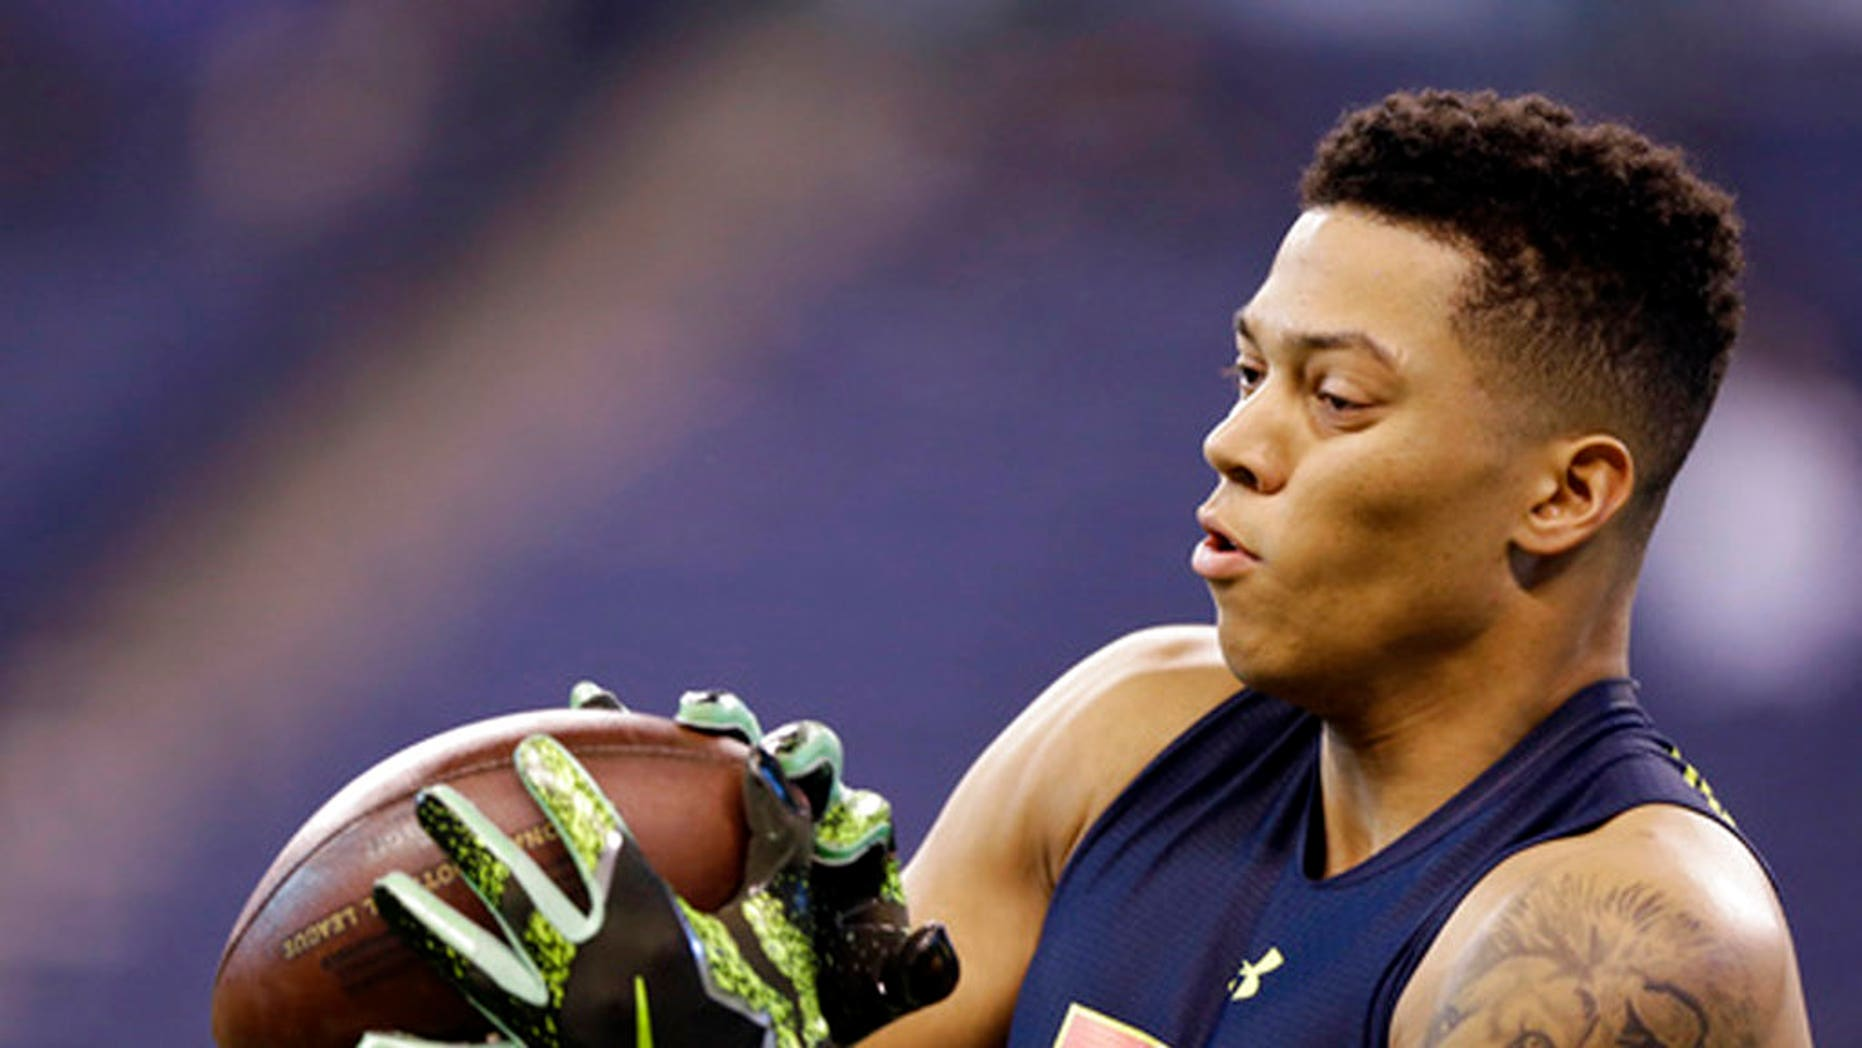 Air Force wide receiver Jalen Robinette makes a catch as he runs a drill at the NFL football scouting combine in Indianapolis.